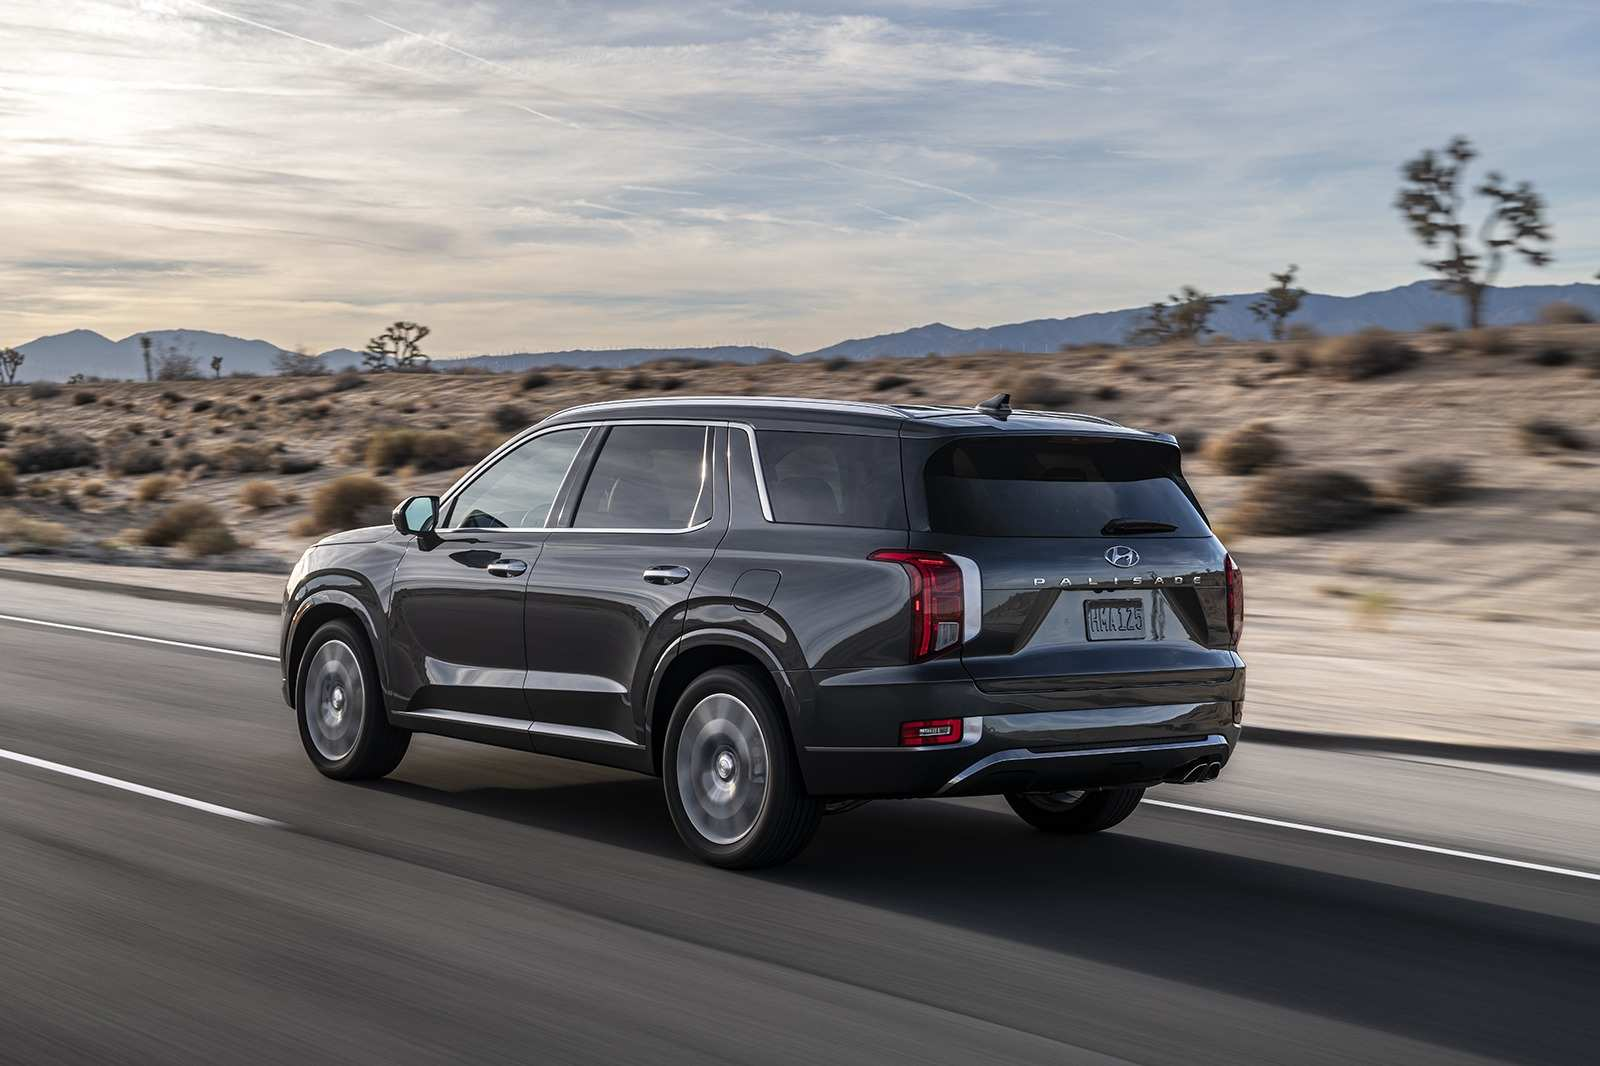 79 The Best Price Of 2020 Hyundai Palisade Prices